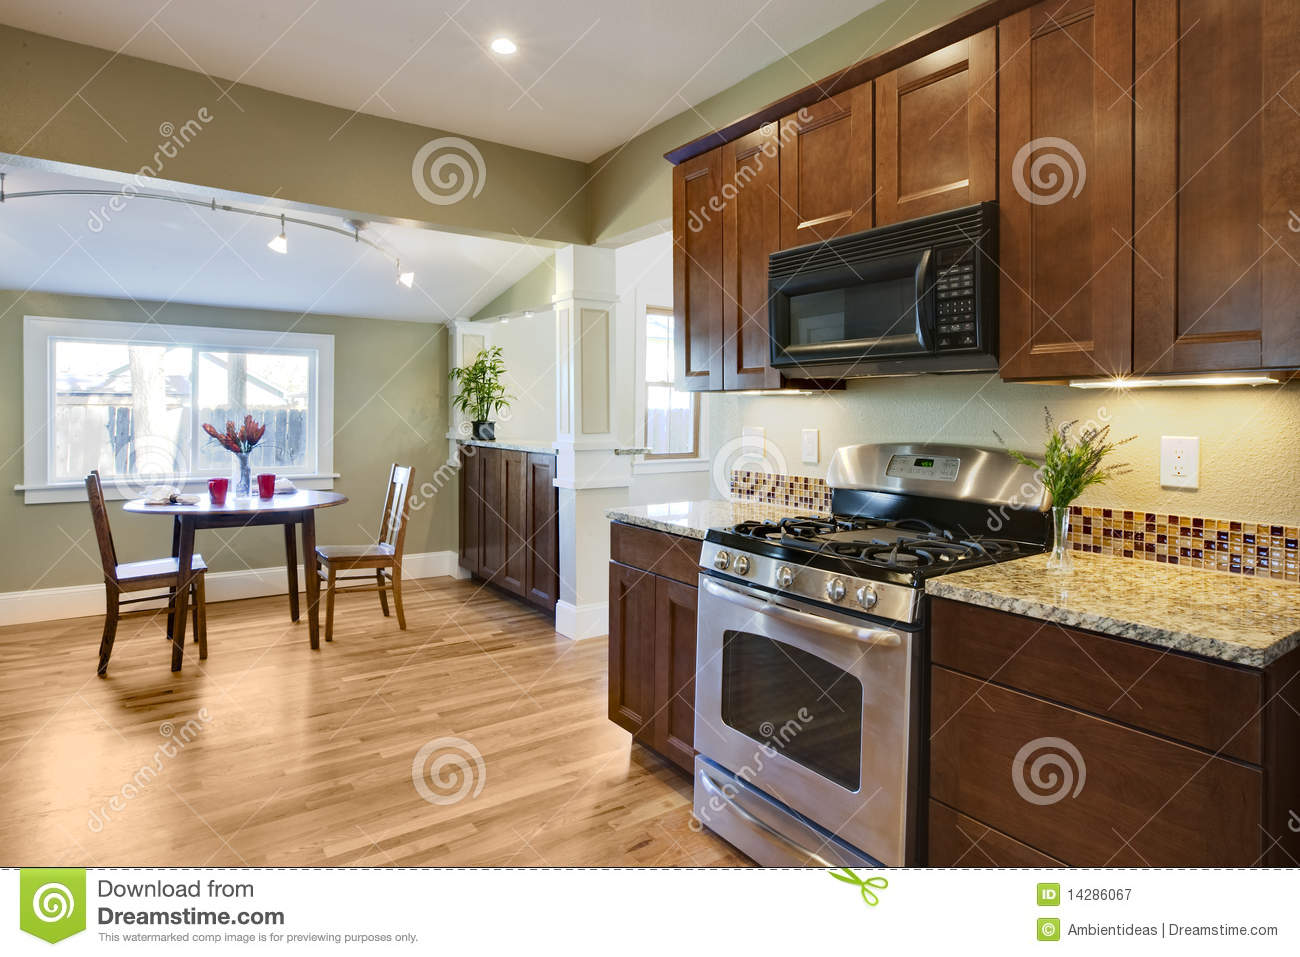 royalty free stock photography remodel kitchen wood flooring image kitchen wood floors Remodel kitchen with wood flooring